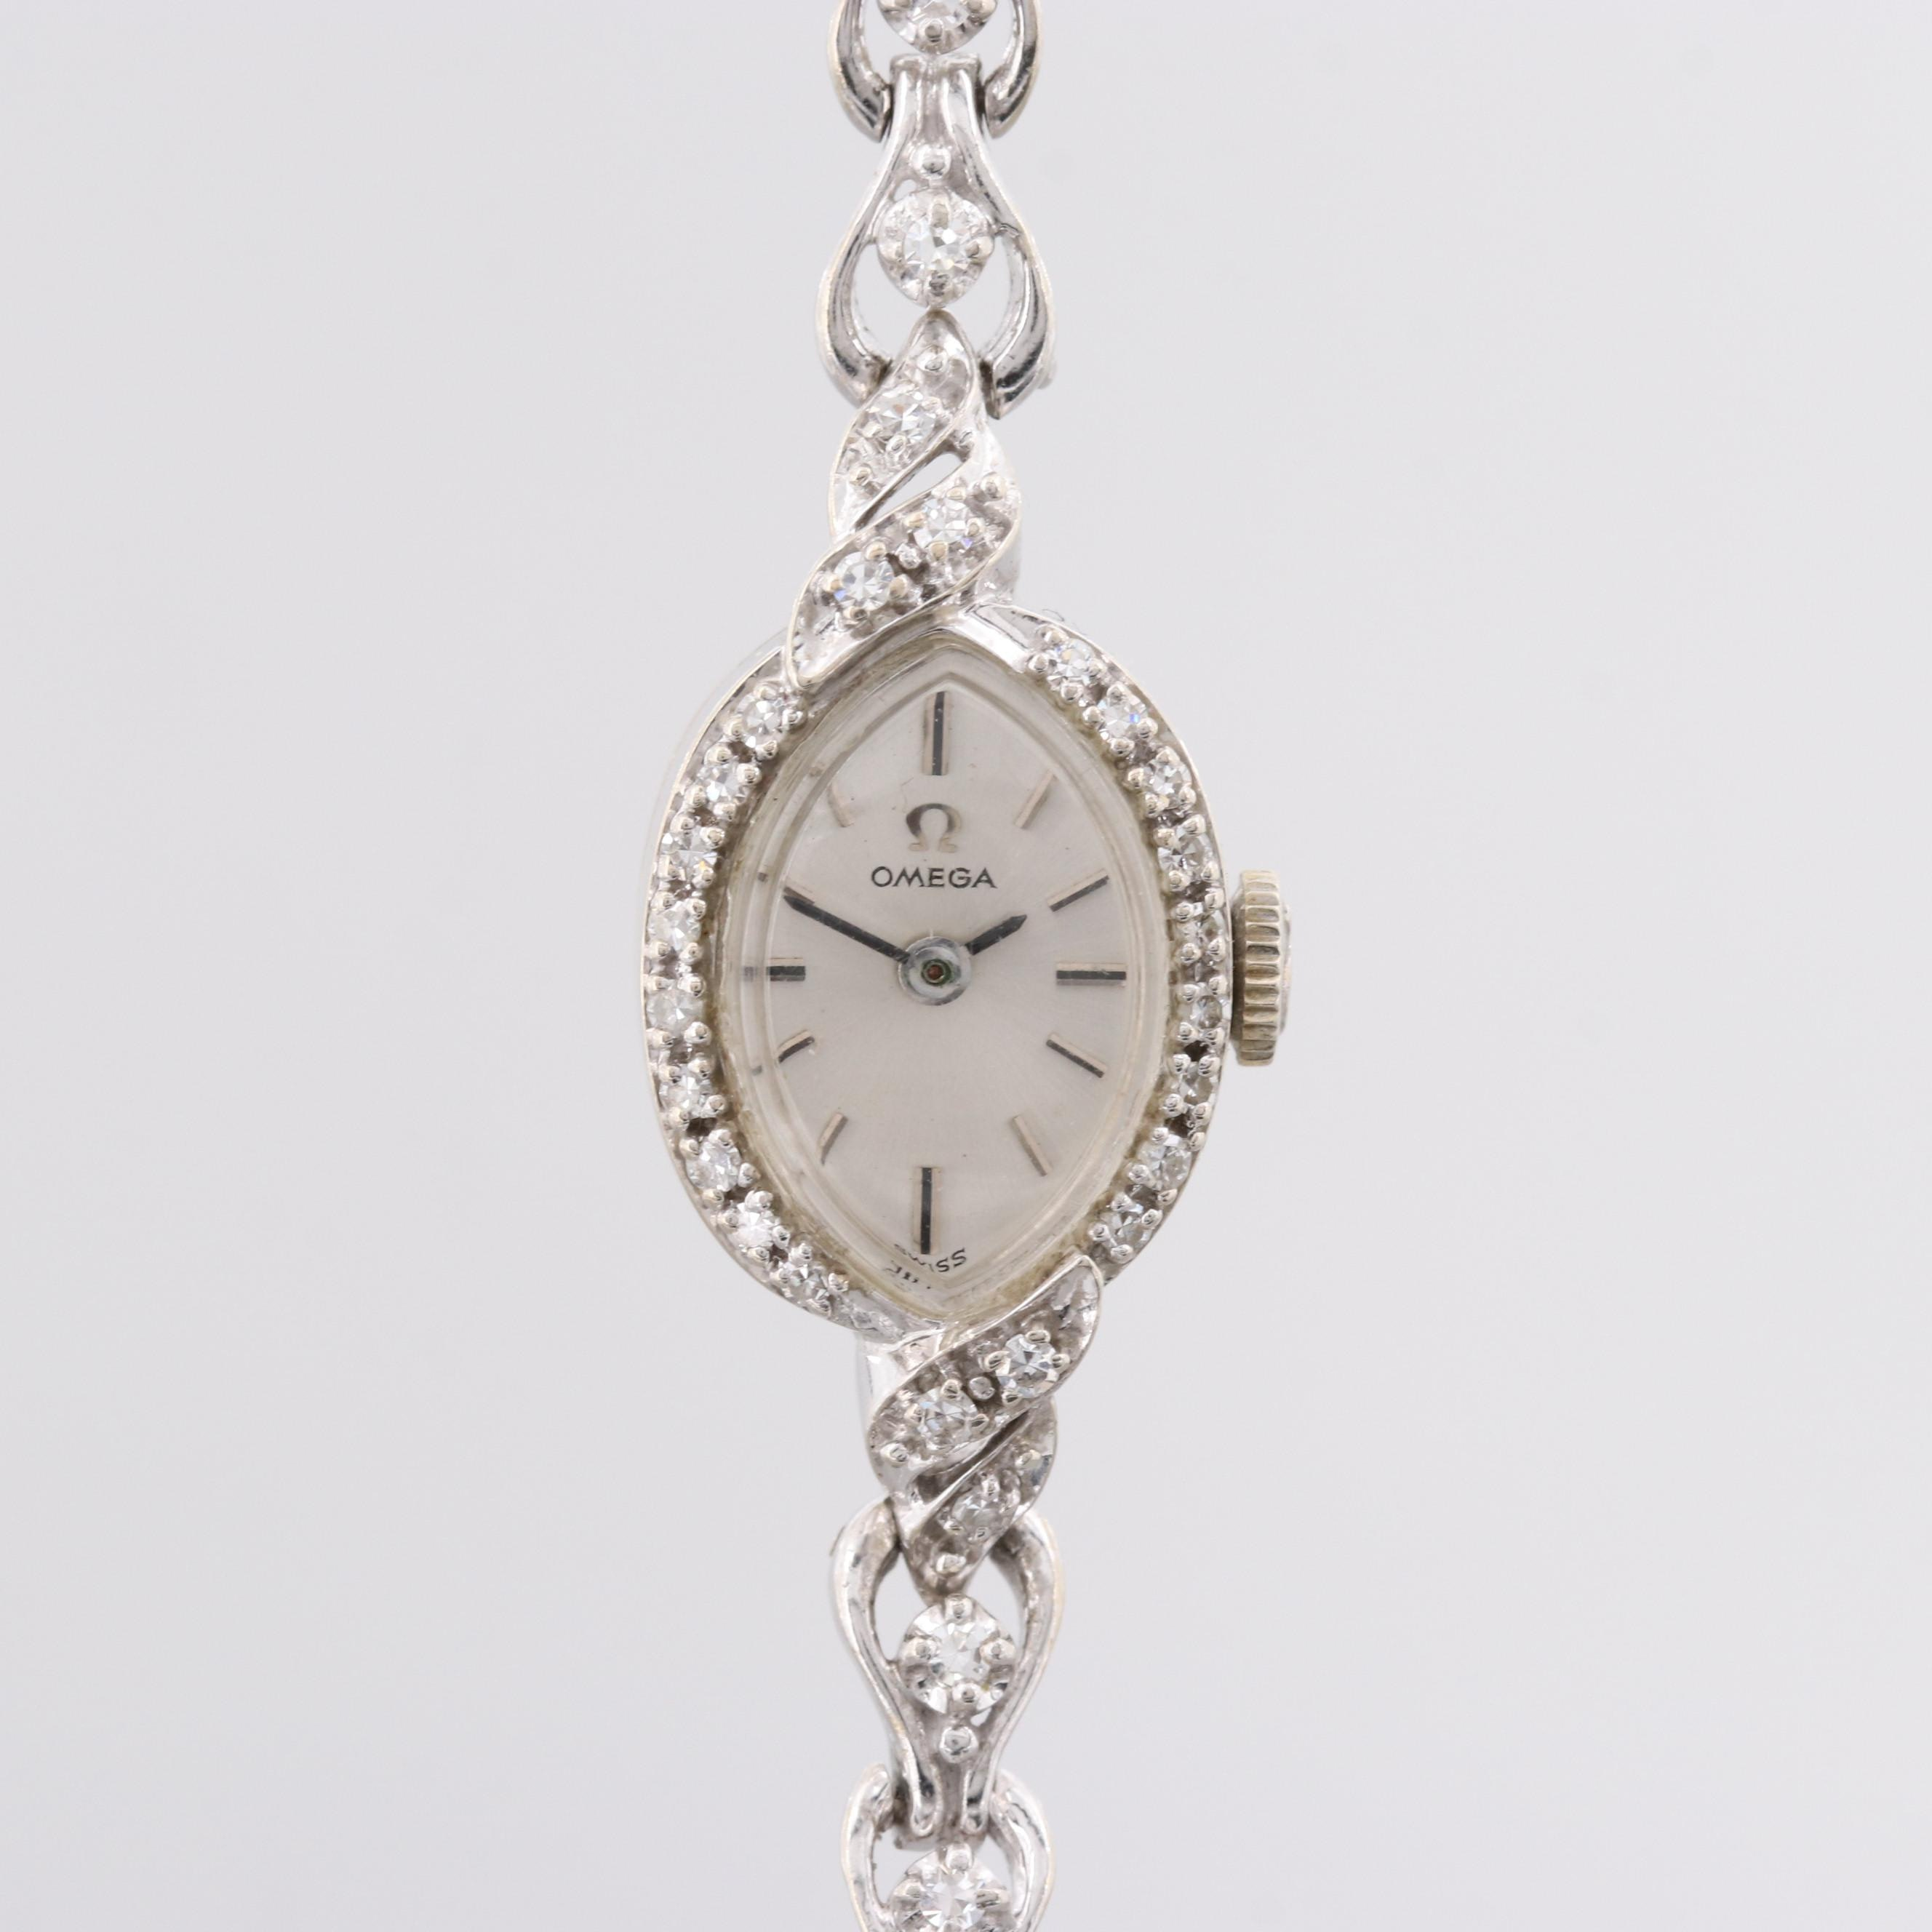 Omega 14K White Gold Diamond Wristwatch